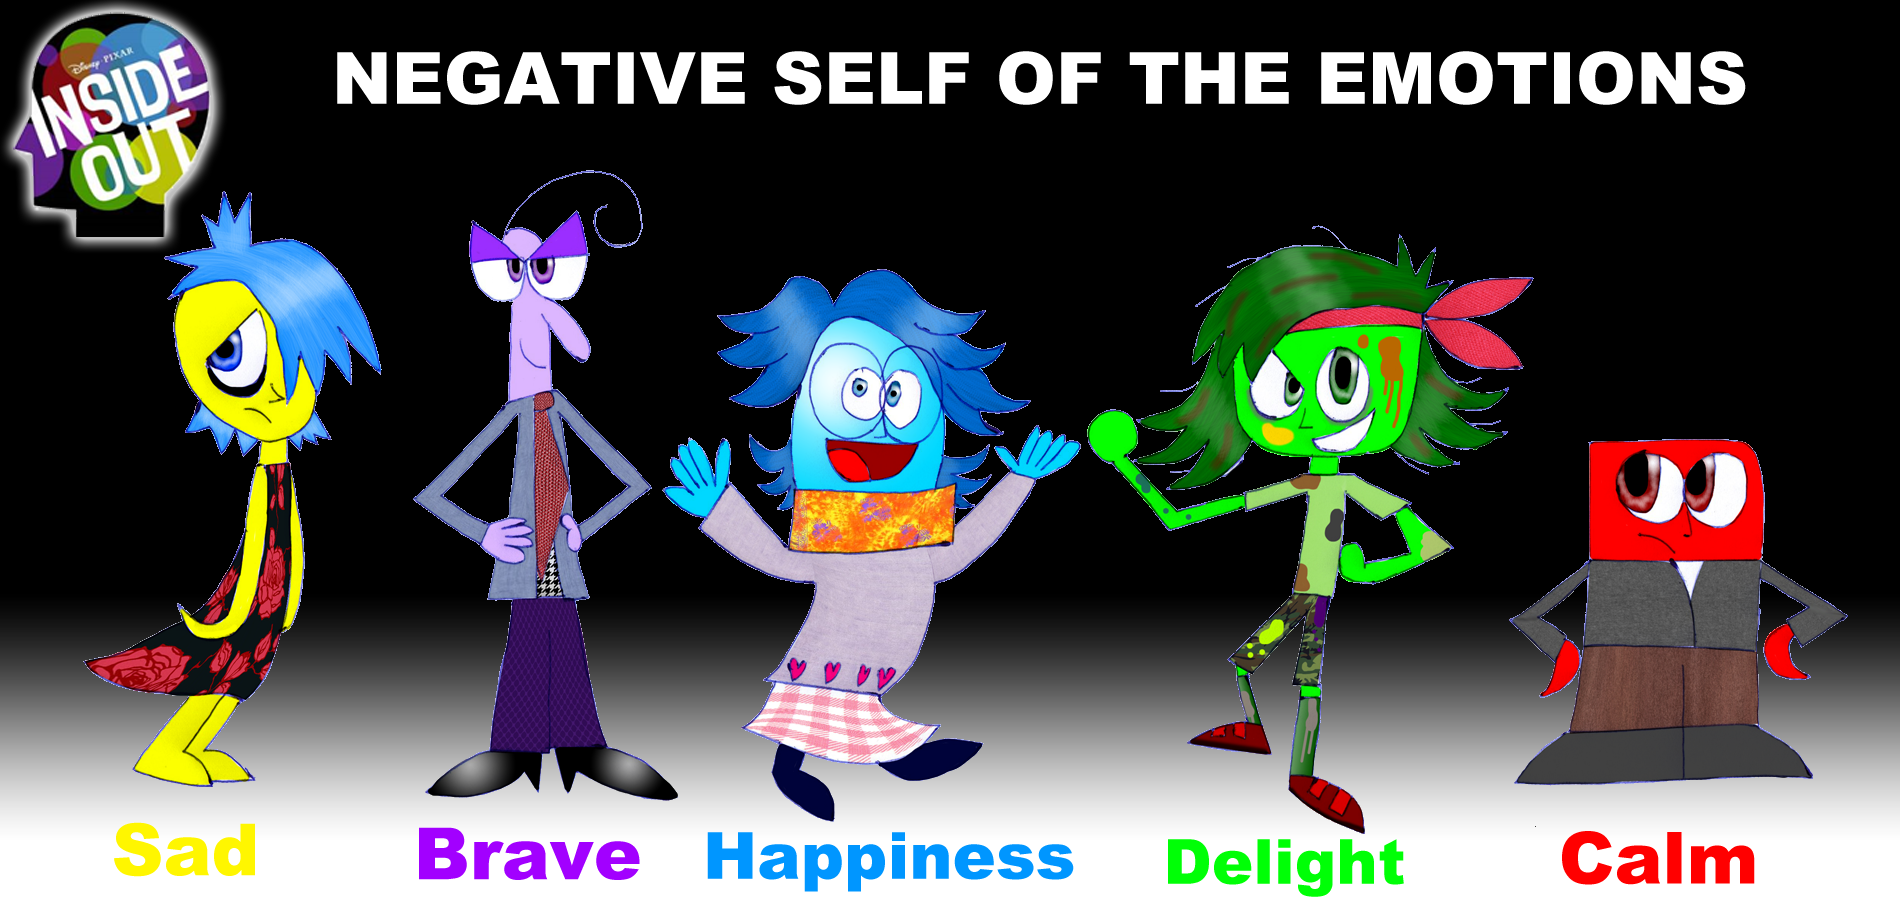 Inside Out Negative Emotions By Zigaudrey On Deviantart